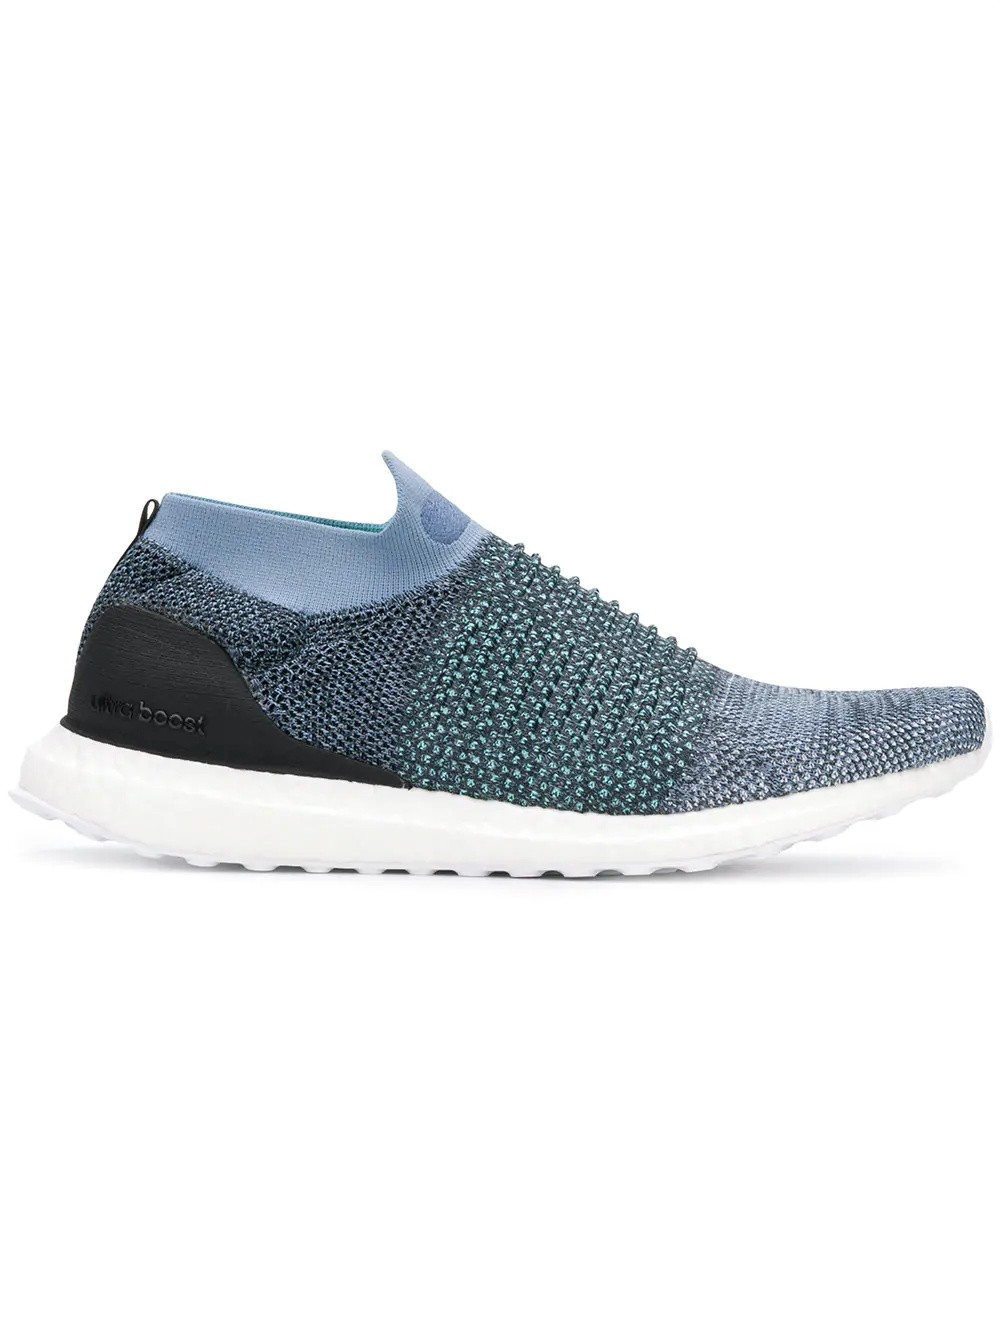 Adidas Ultra Boost Laceless Parley Hombre Azules CM8271